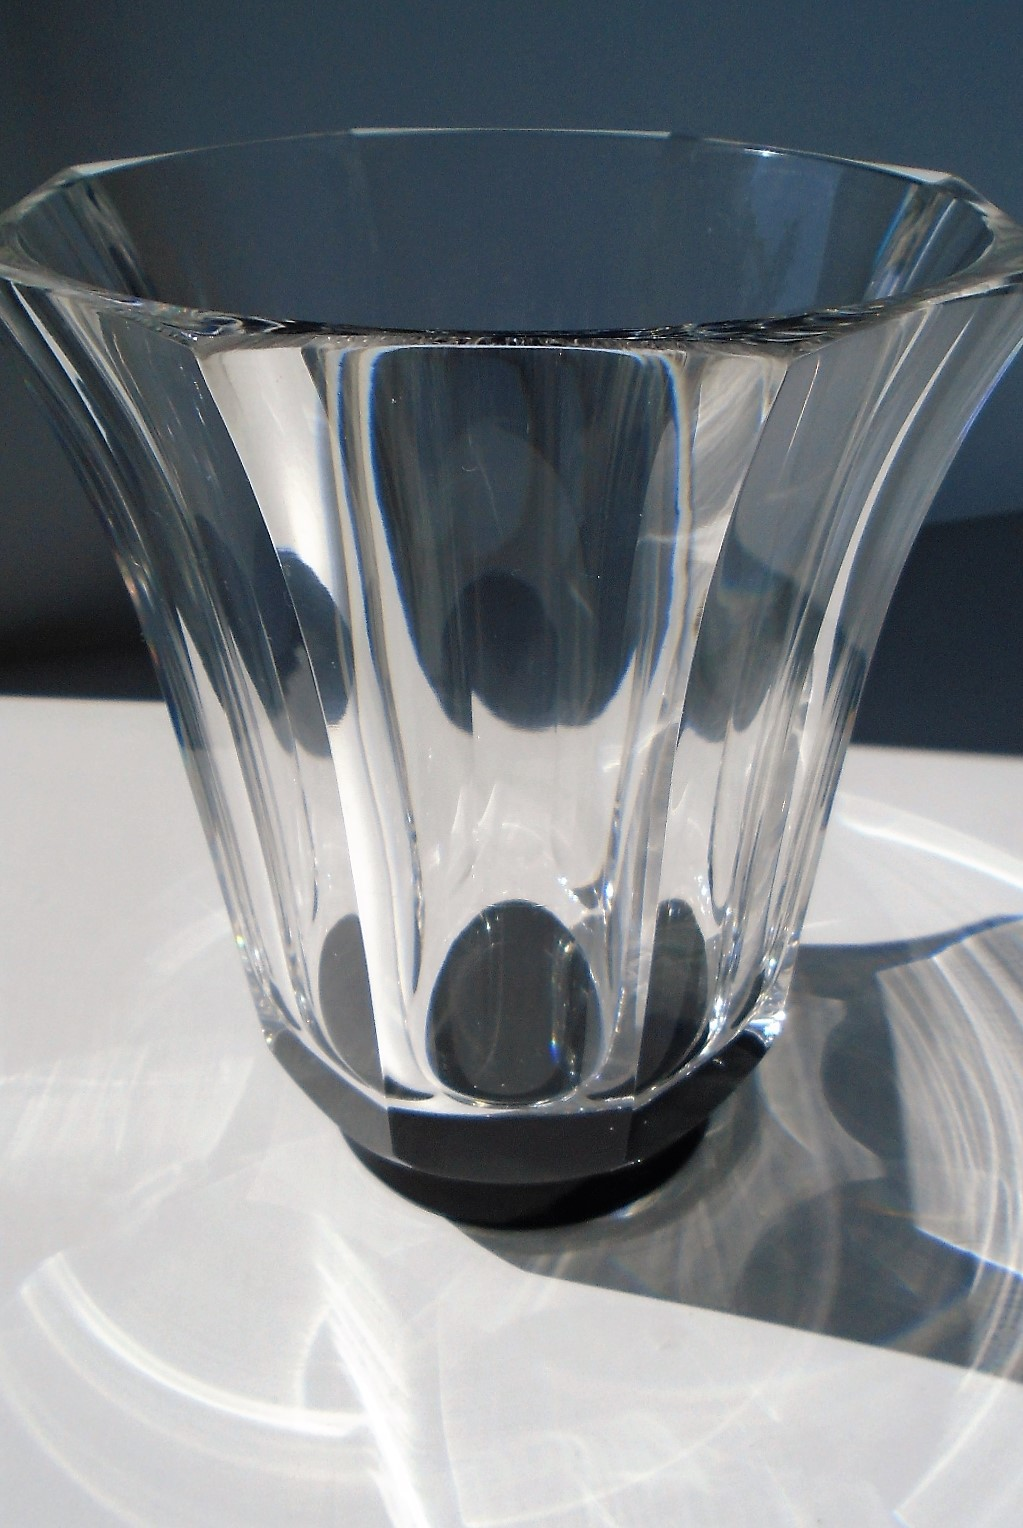 Stunning piece of Swedish Simon Gate 1930s vintage Orrefors crystal glass in the form of this 13.5cms high facetted clear glass vase on a black glass base